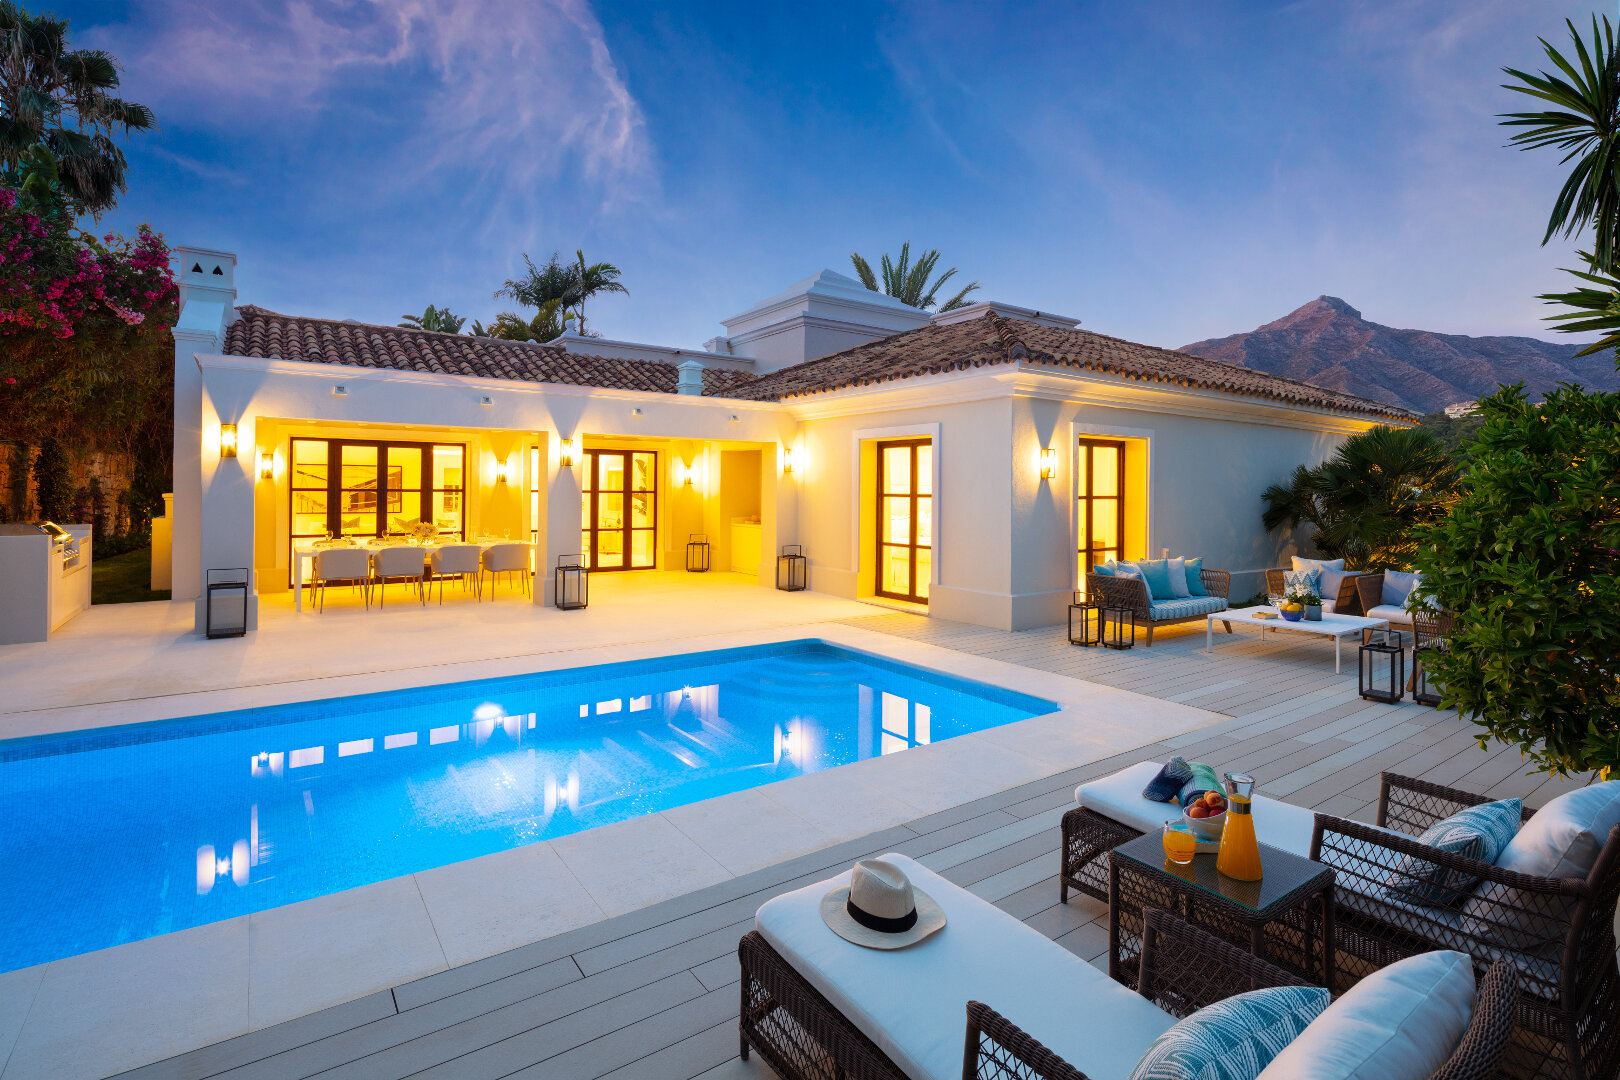 Family Villa in the heart of the Golf Valley, Las Brisas Marbella, close to amenities and schools